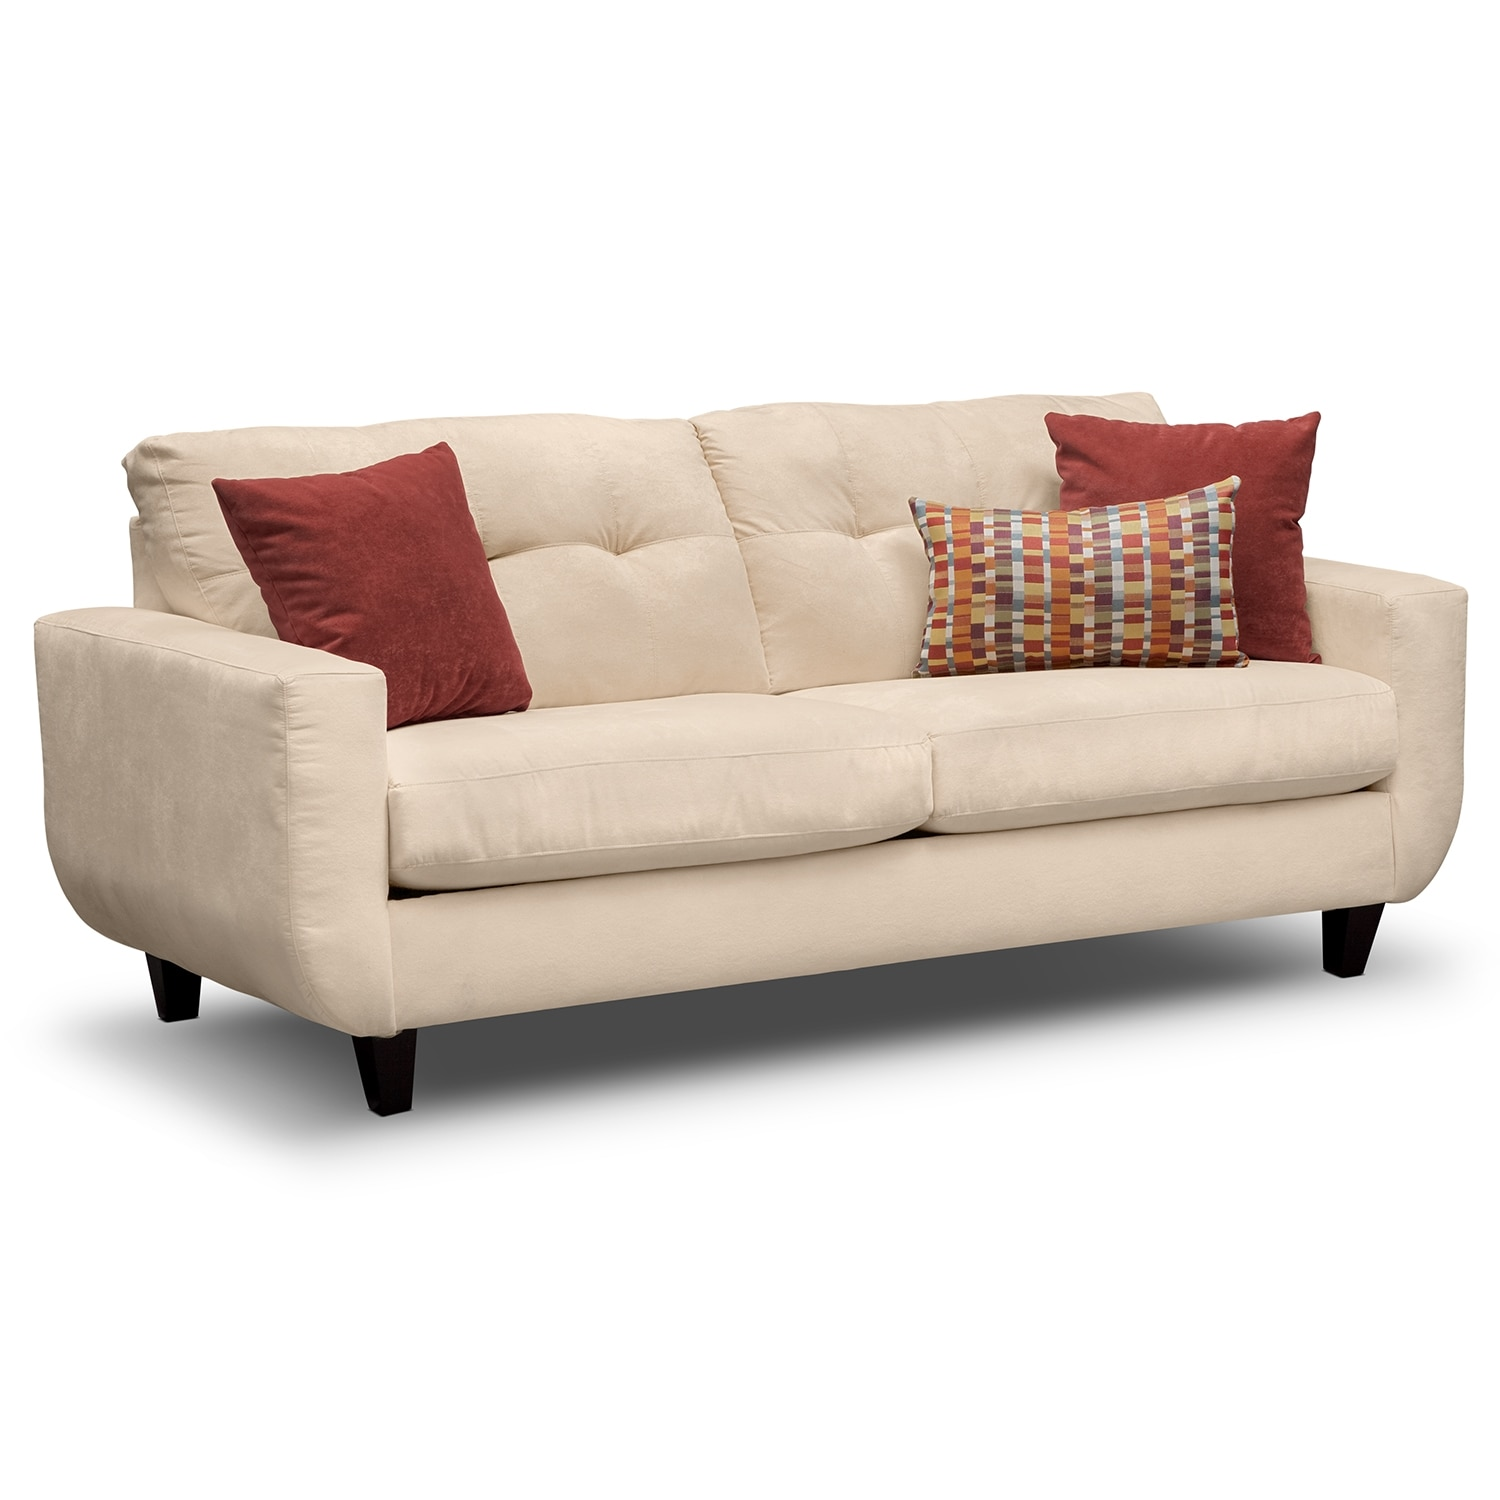 West Village Sofa Loveseat And Chair Cream American Signature Furniture